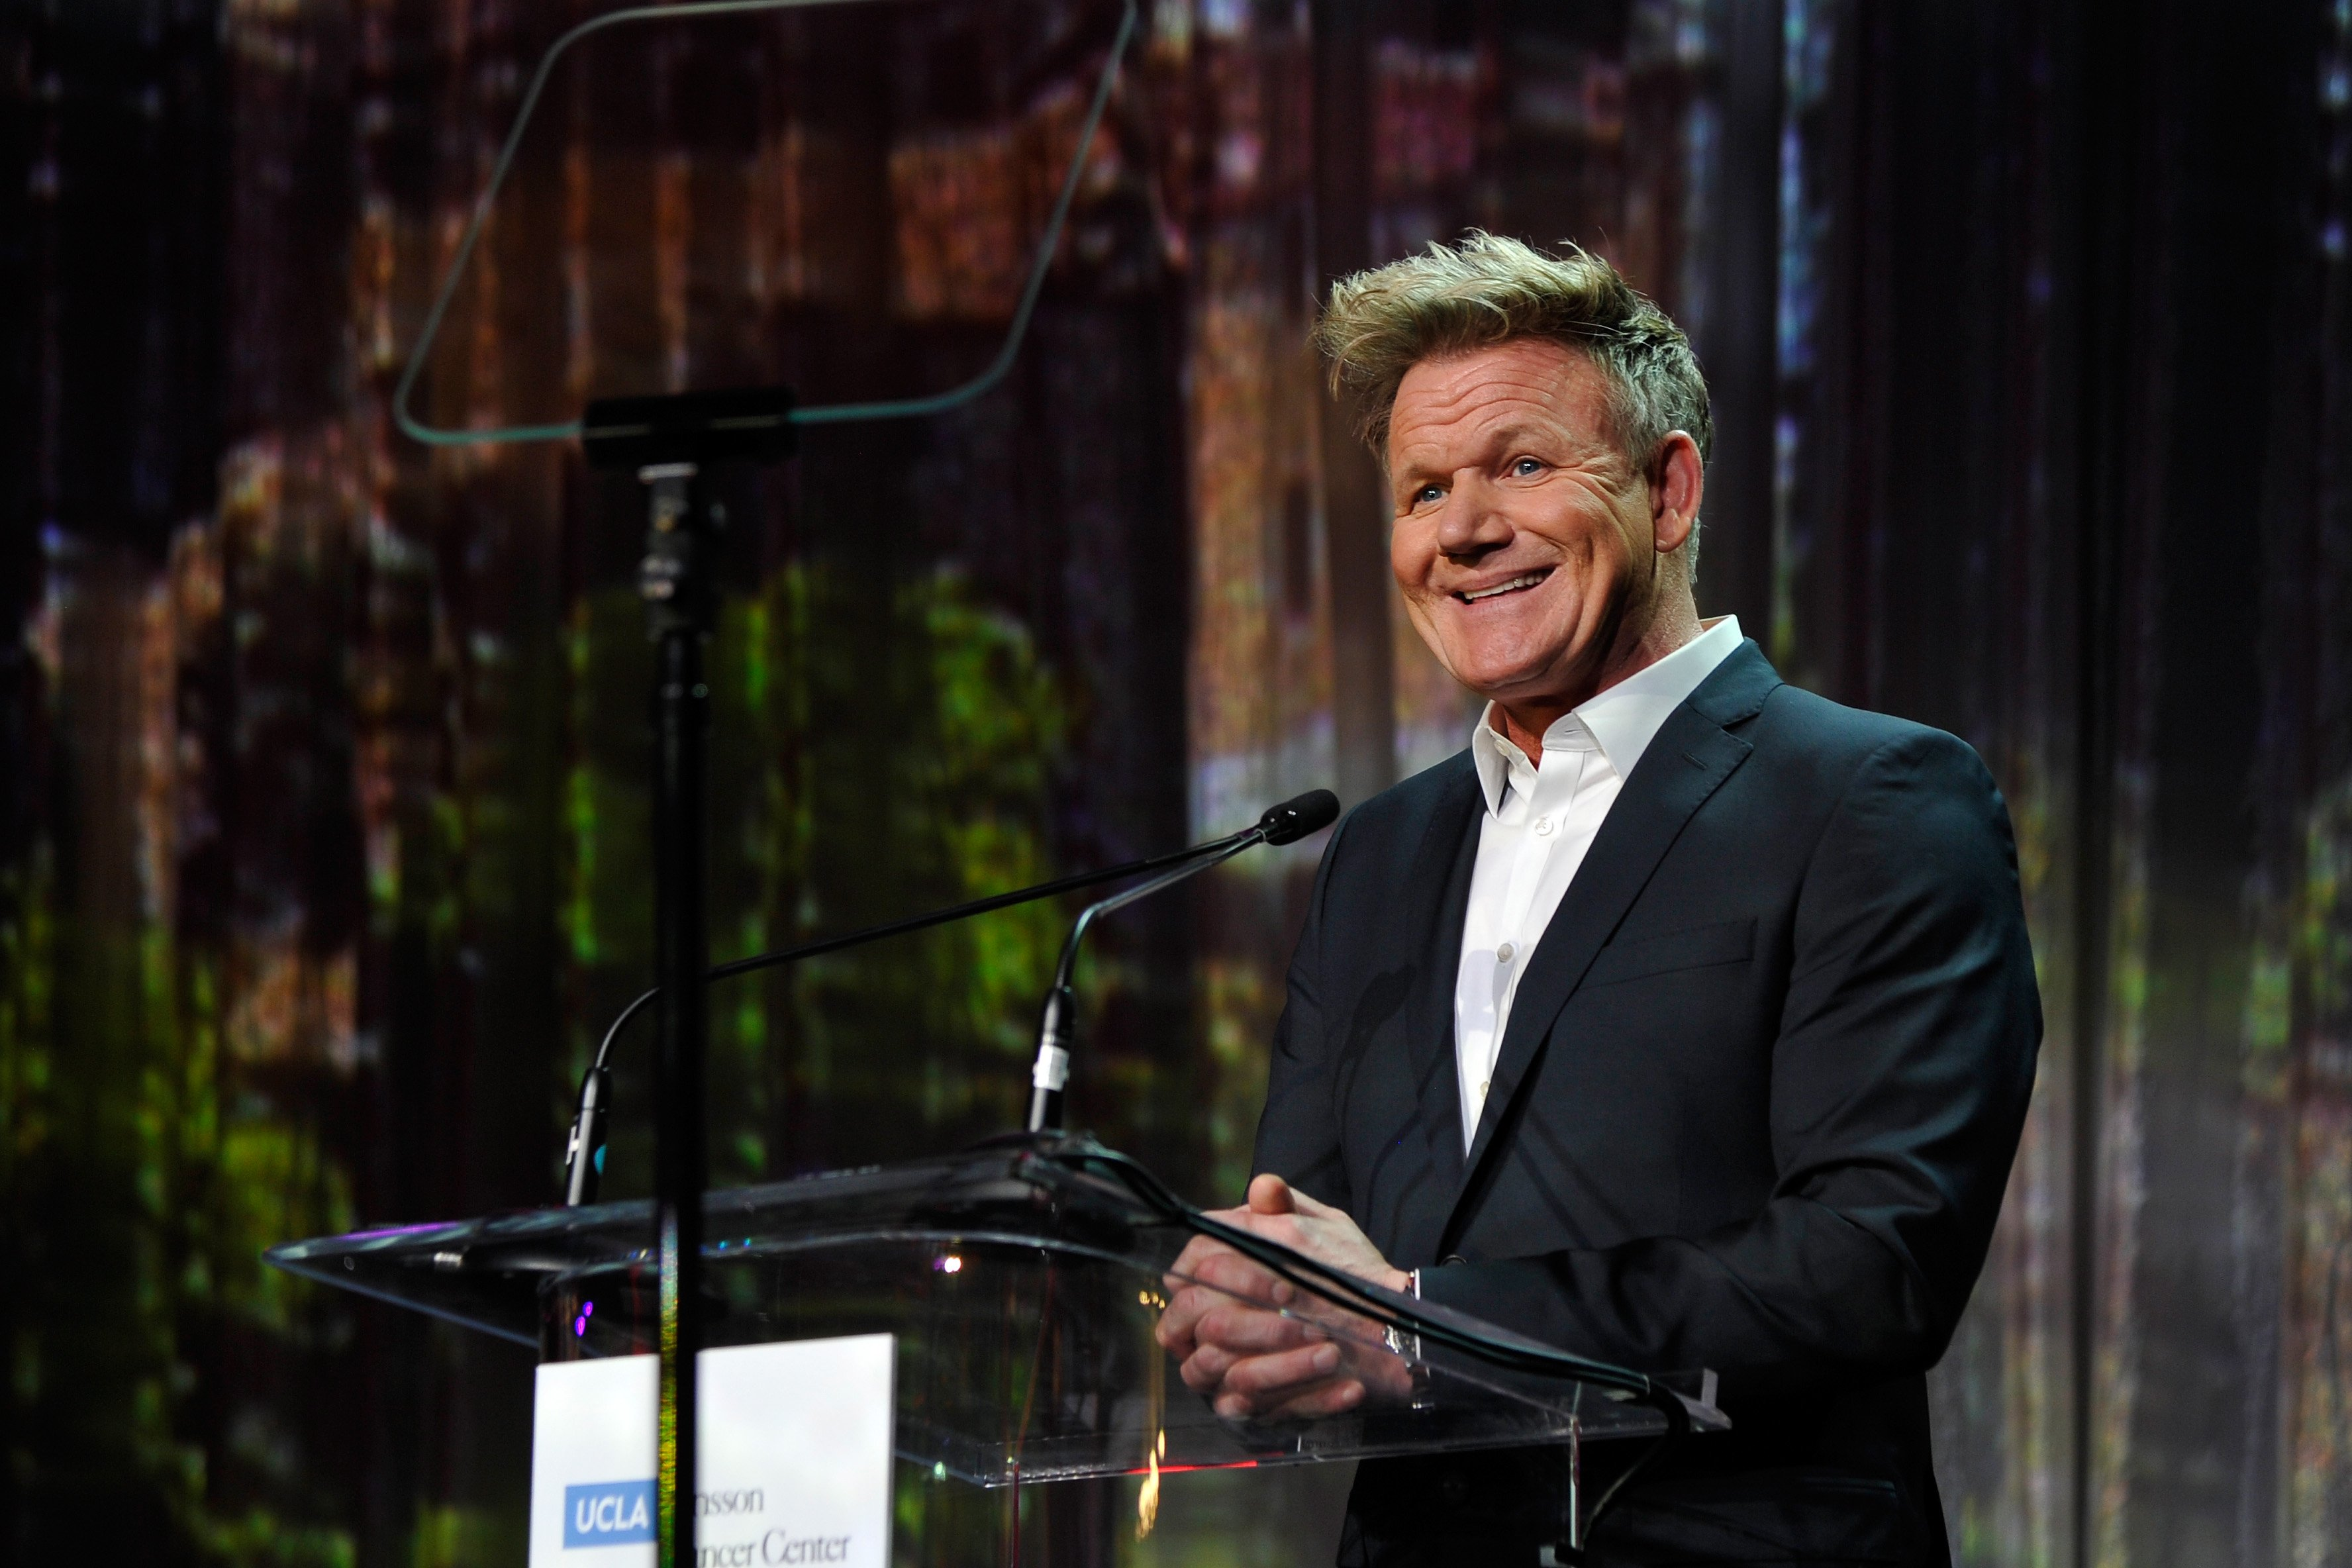 Chef and restaurateur Gordon Ramsay onstage. | Photo: Getty Images